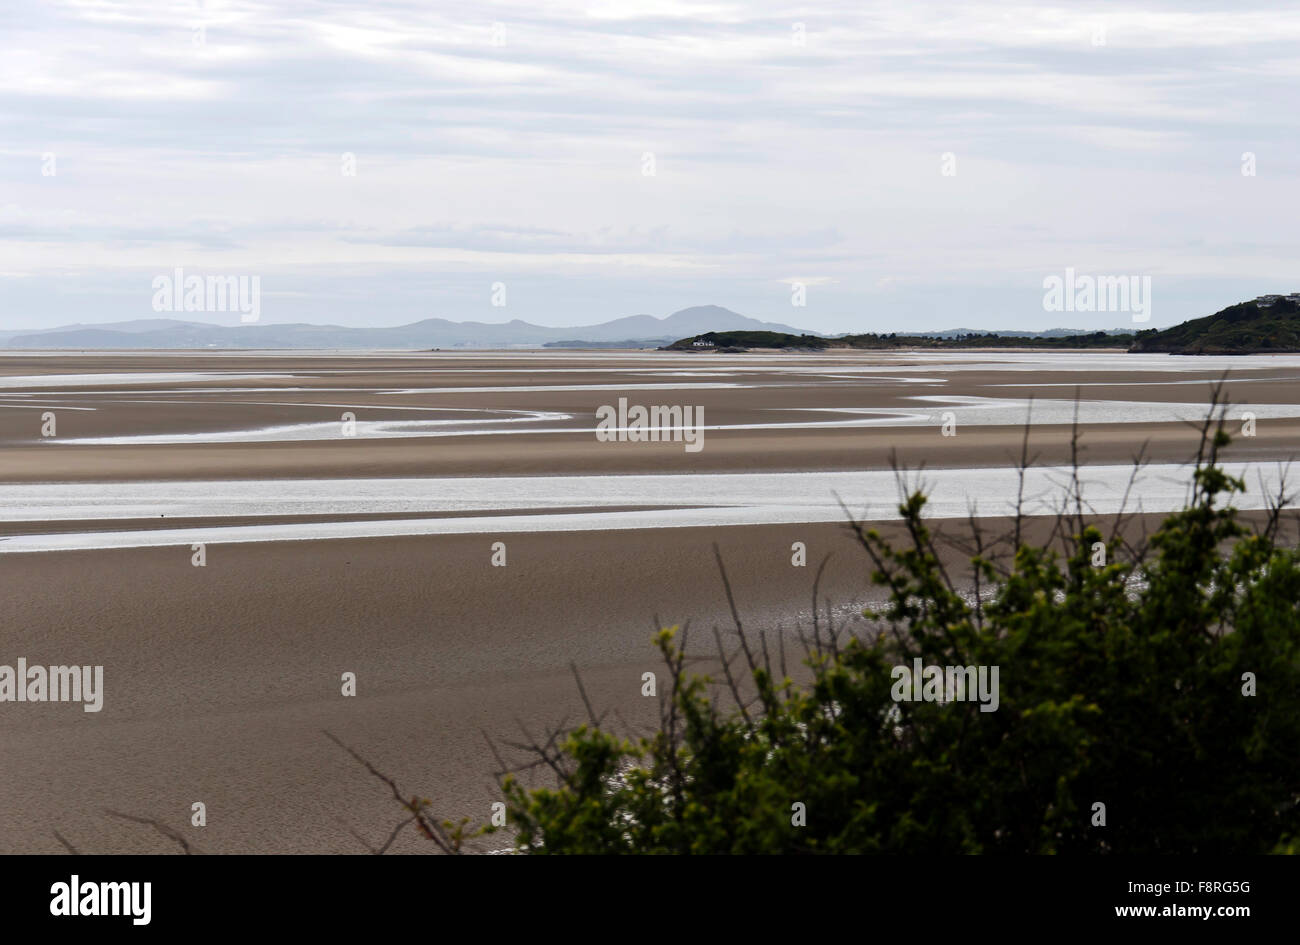 The bay at Portmeirion, the village in North Wales that featured as 'The Village' in 'The 'Prisoner' - Stock Image